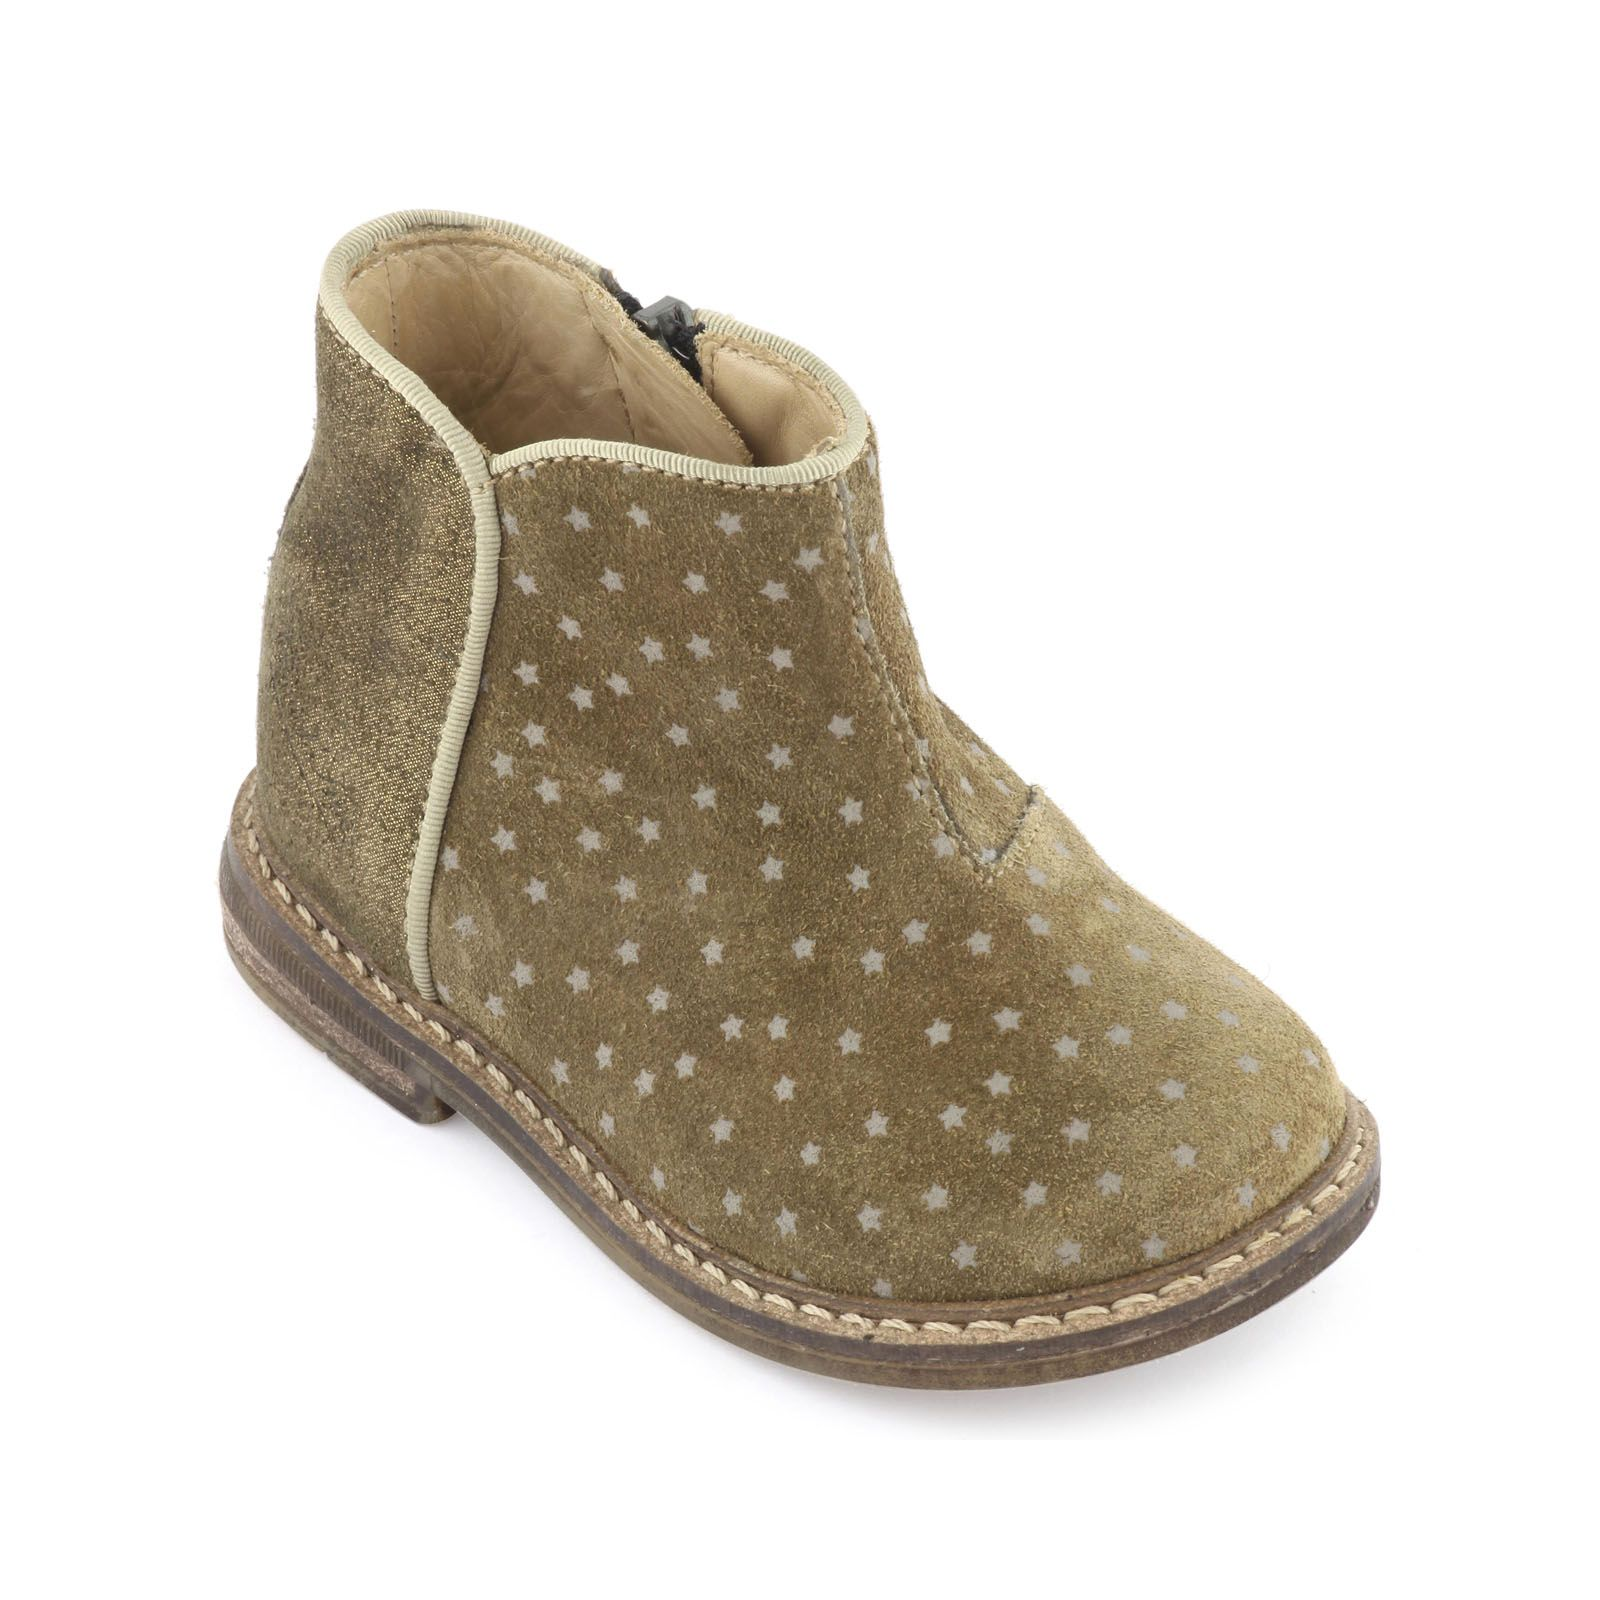 Star-printed upper made of suede leather. Leather patch with gold highlights at the back of the shoe. Leather insoles and lining. Strengthening patches at the back of the shoe. Zip fastening on the side.non-slip gum outsoles. Leg = 7 cm. - $ 118.00